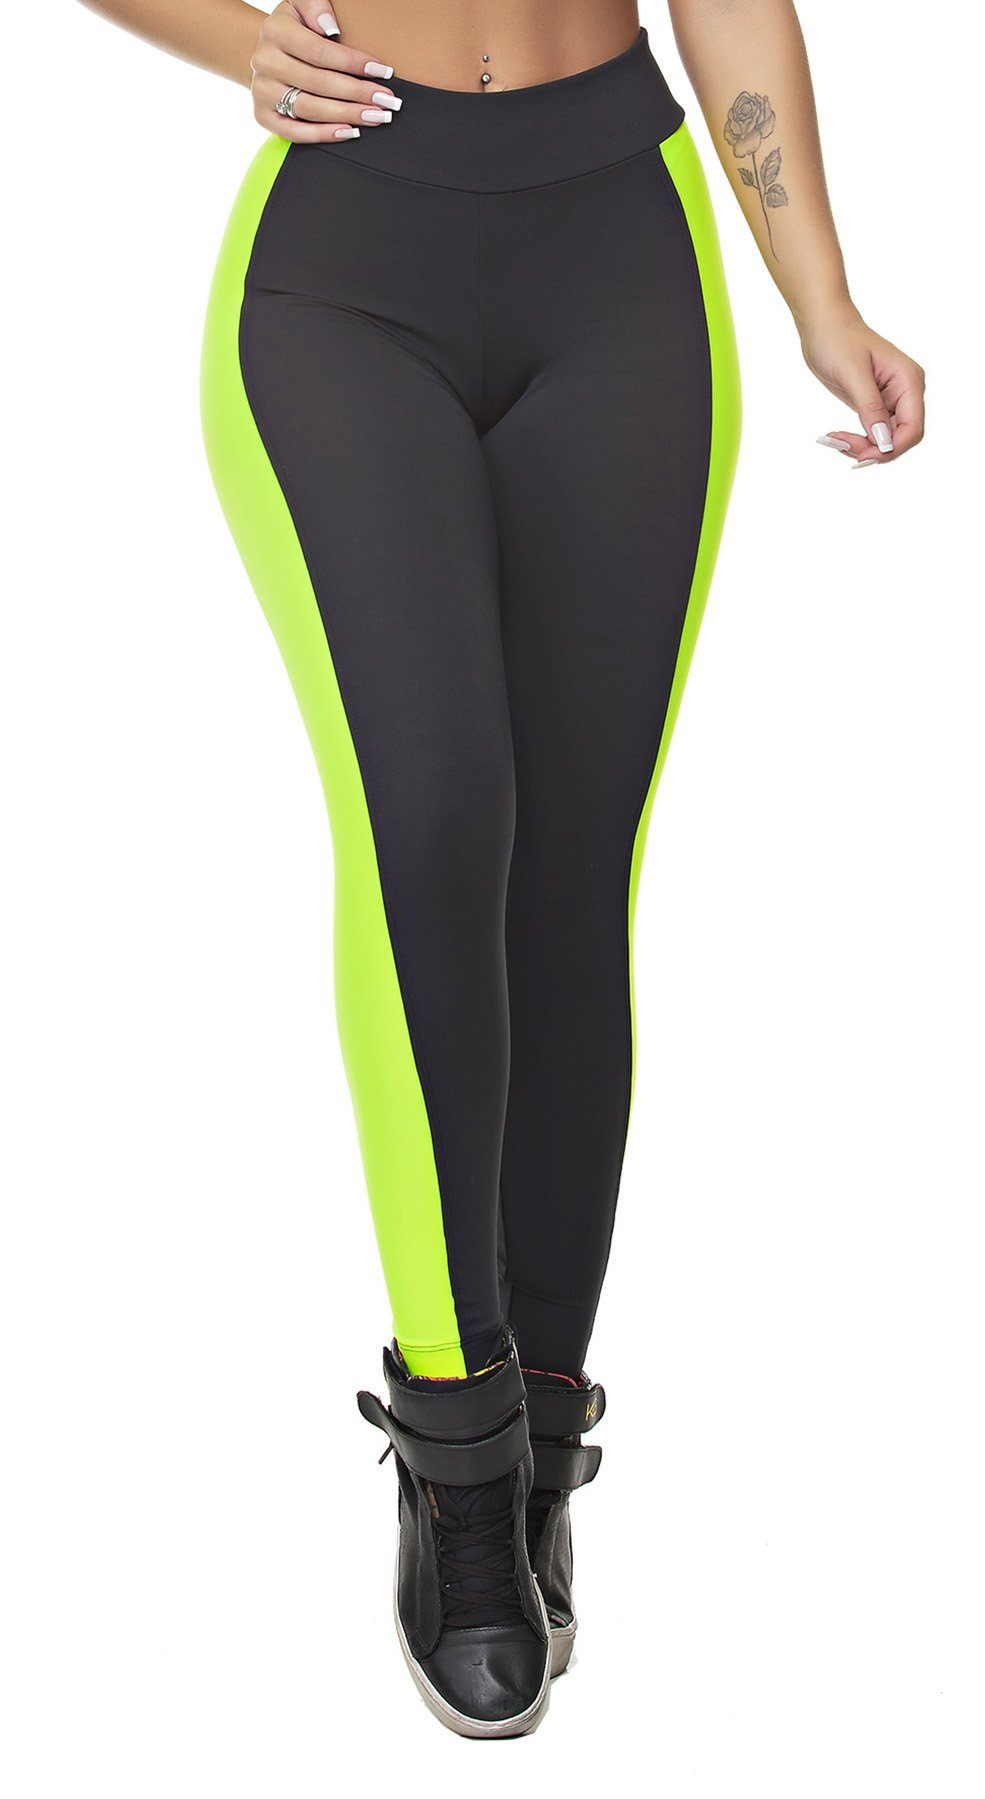 Workout Legging - Power Vibes Neon Yellow